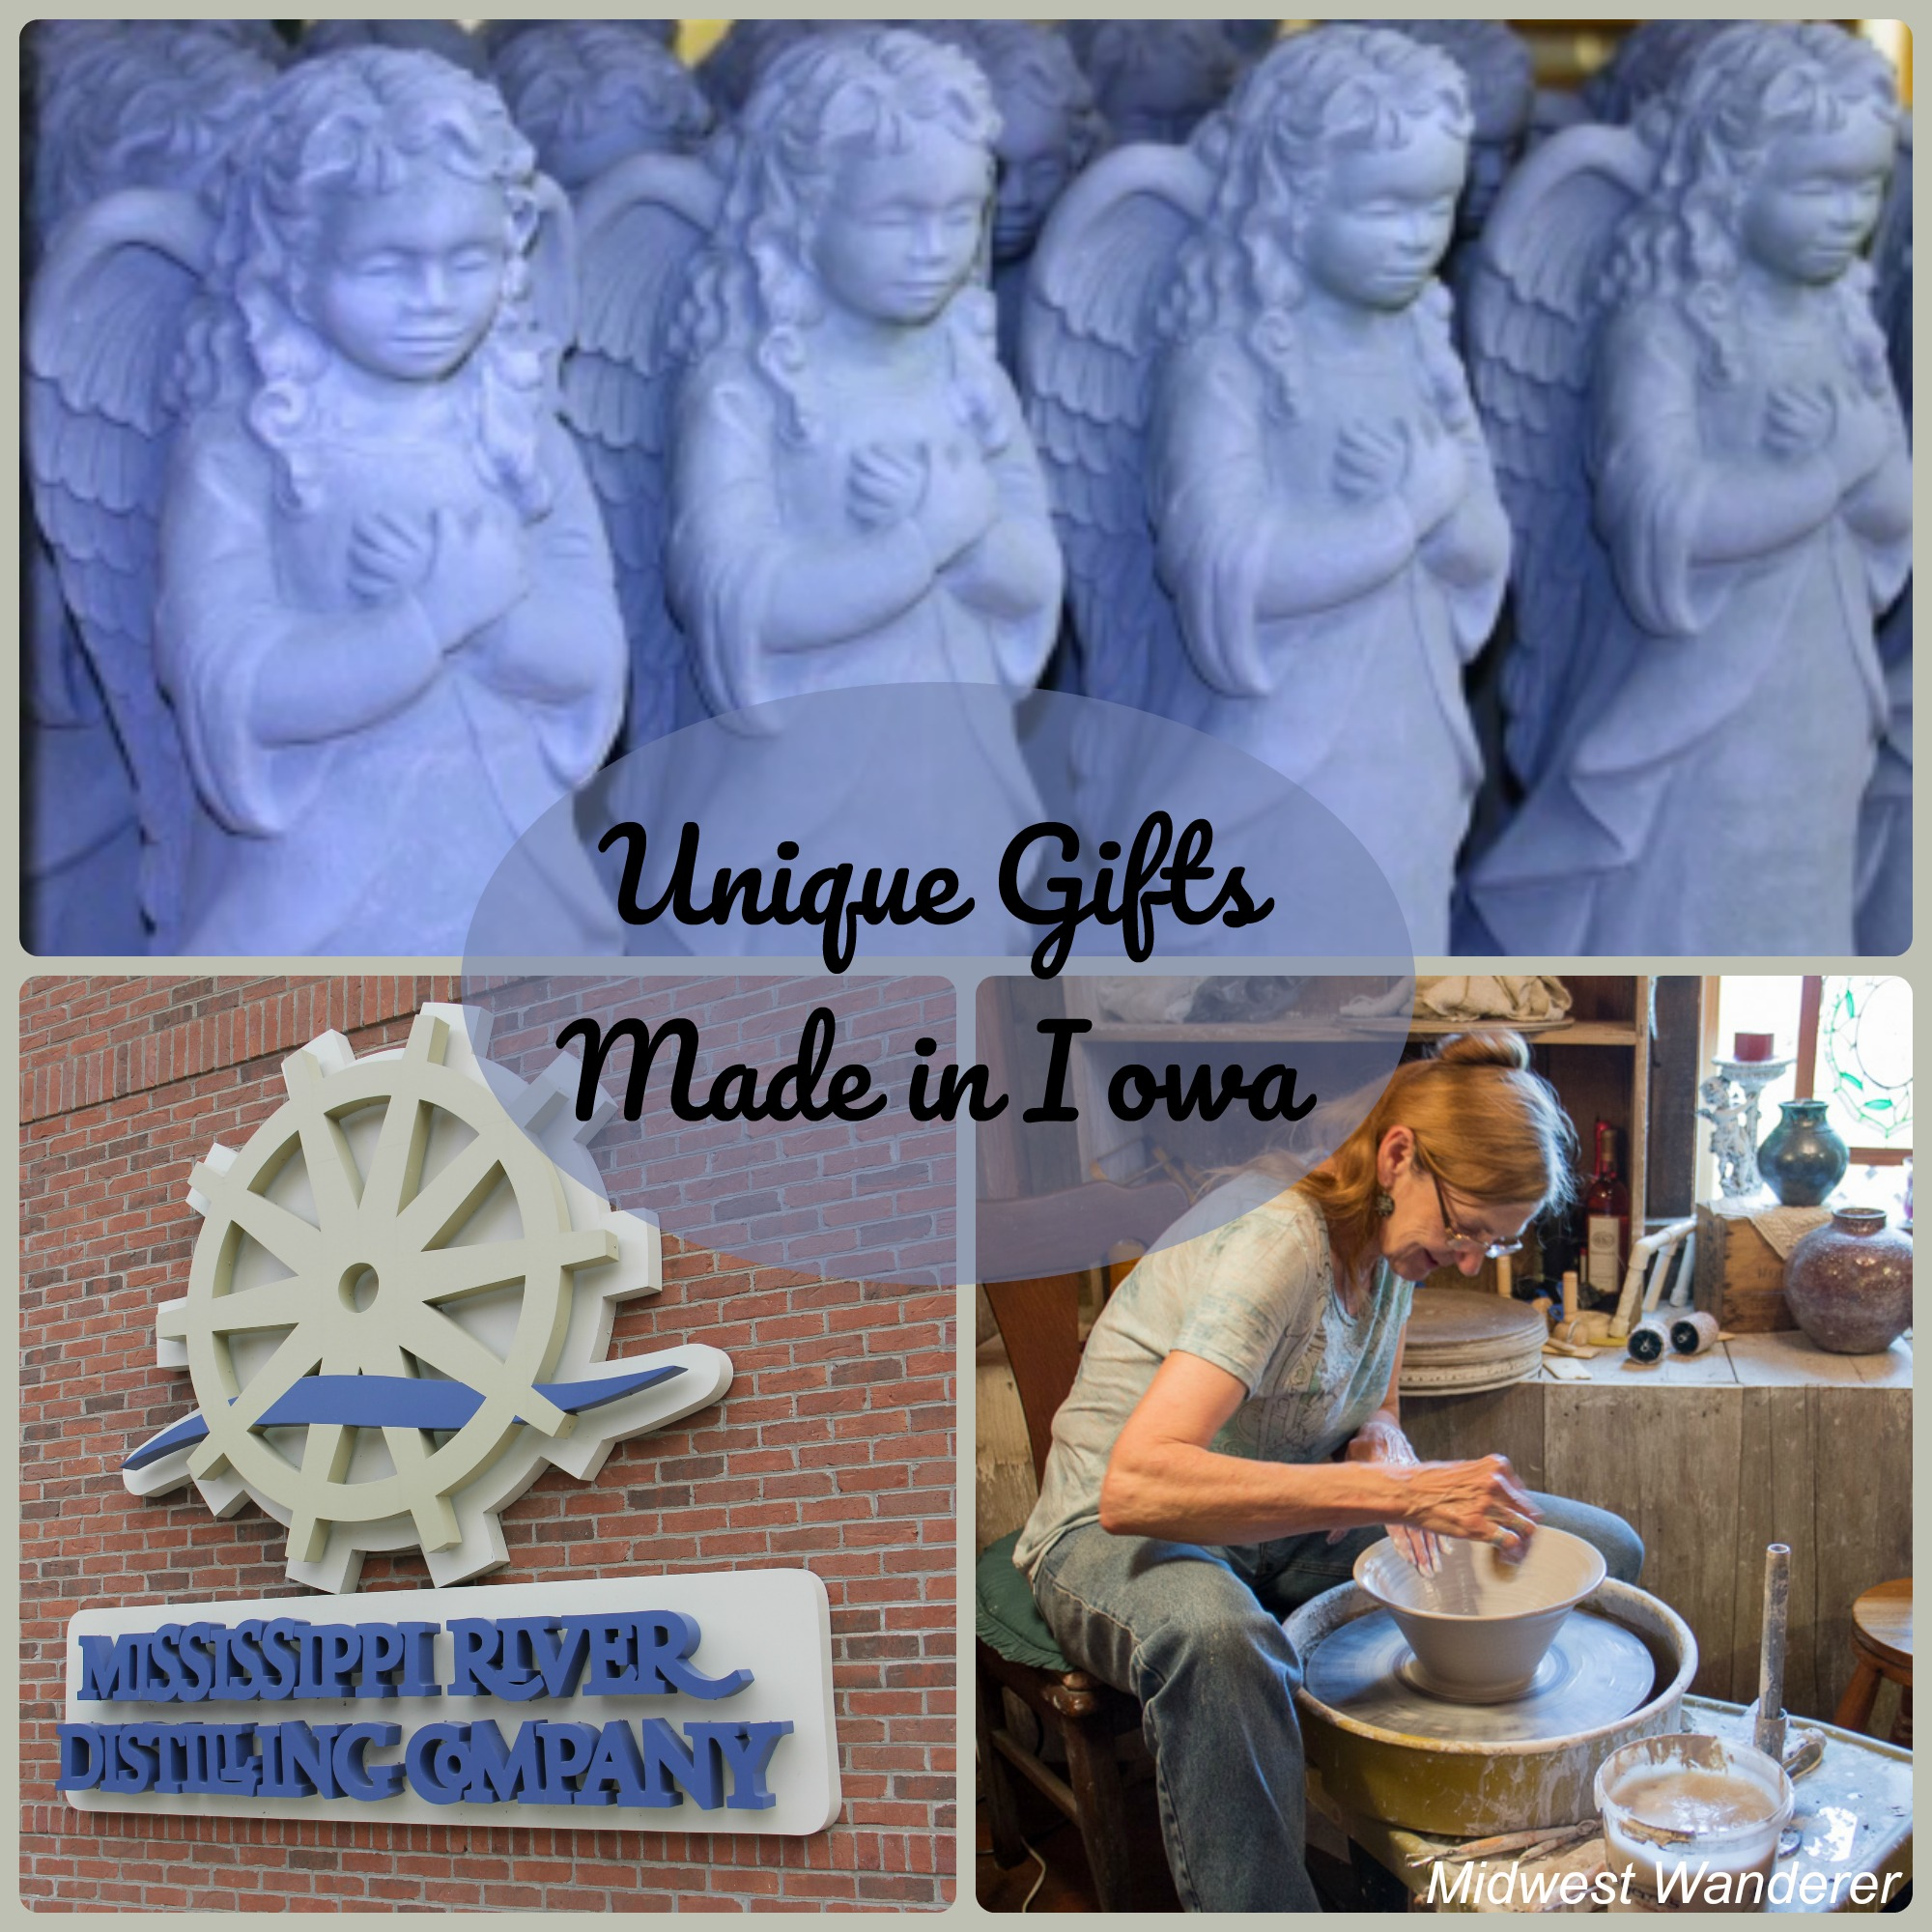 Unique Gift Stores: Shop 'Made In Iowa' For Unique Gift Ideas